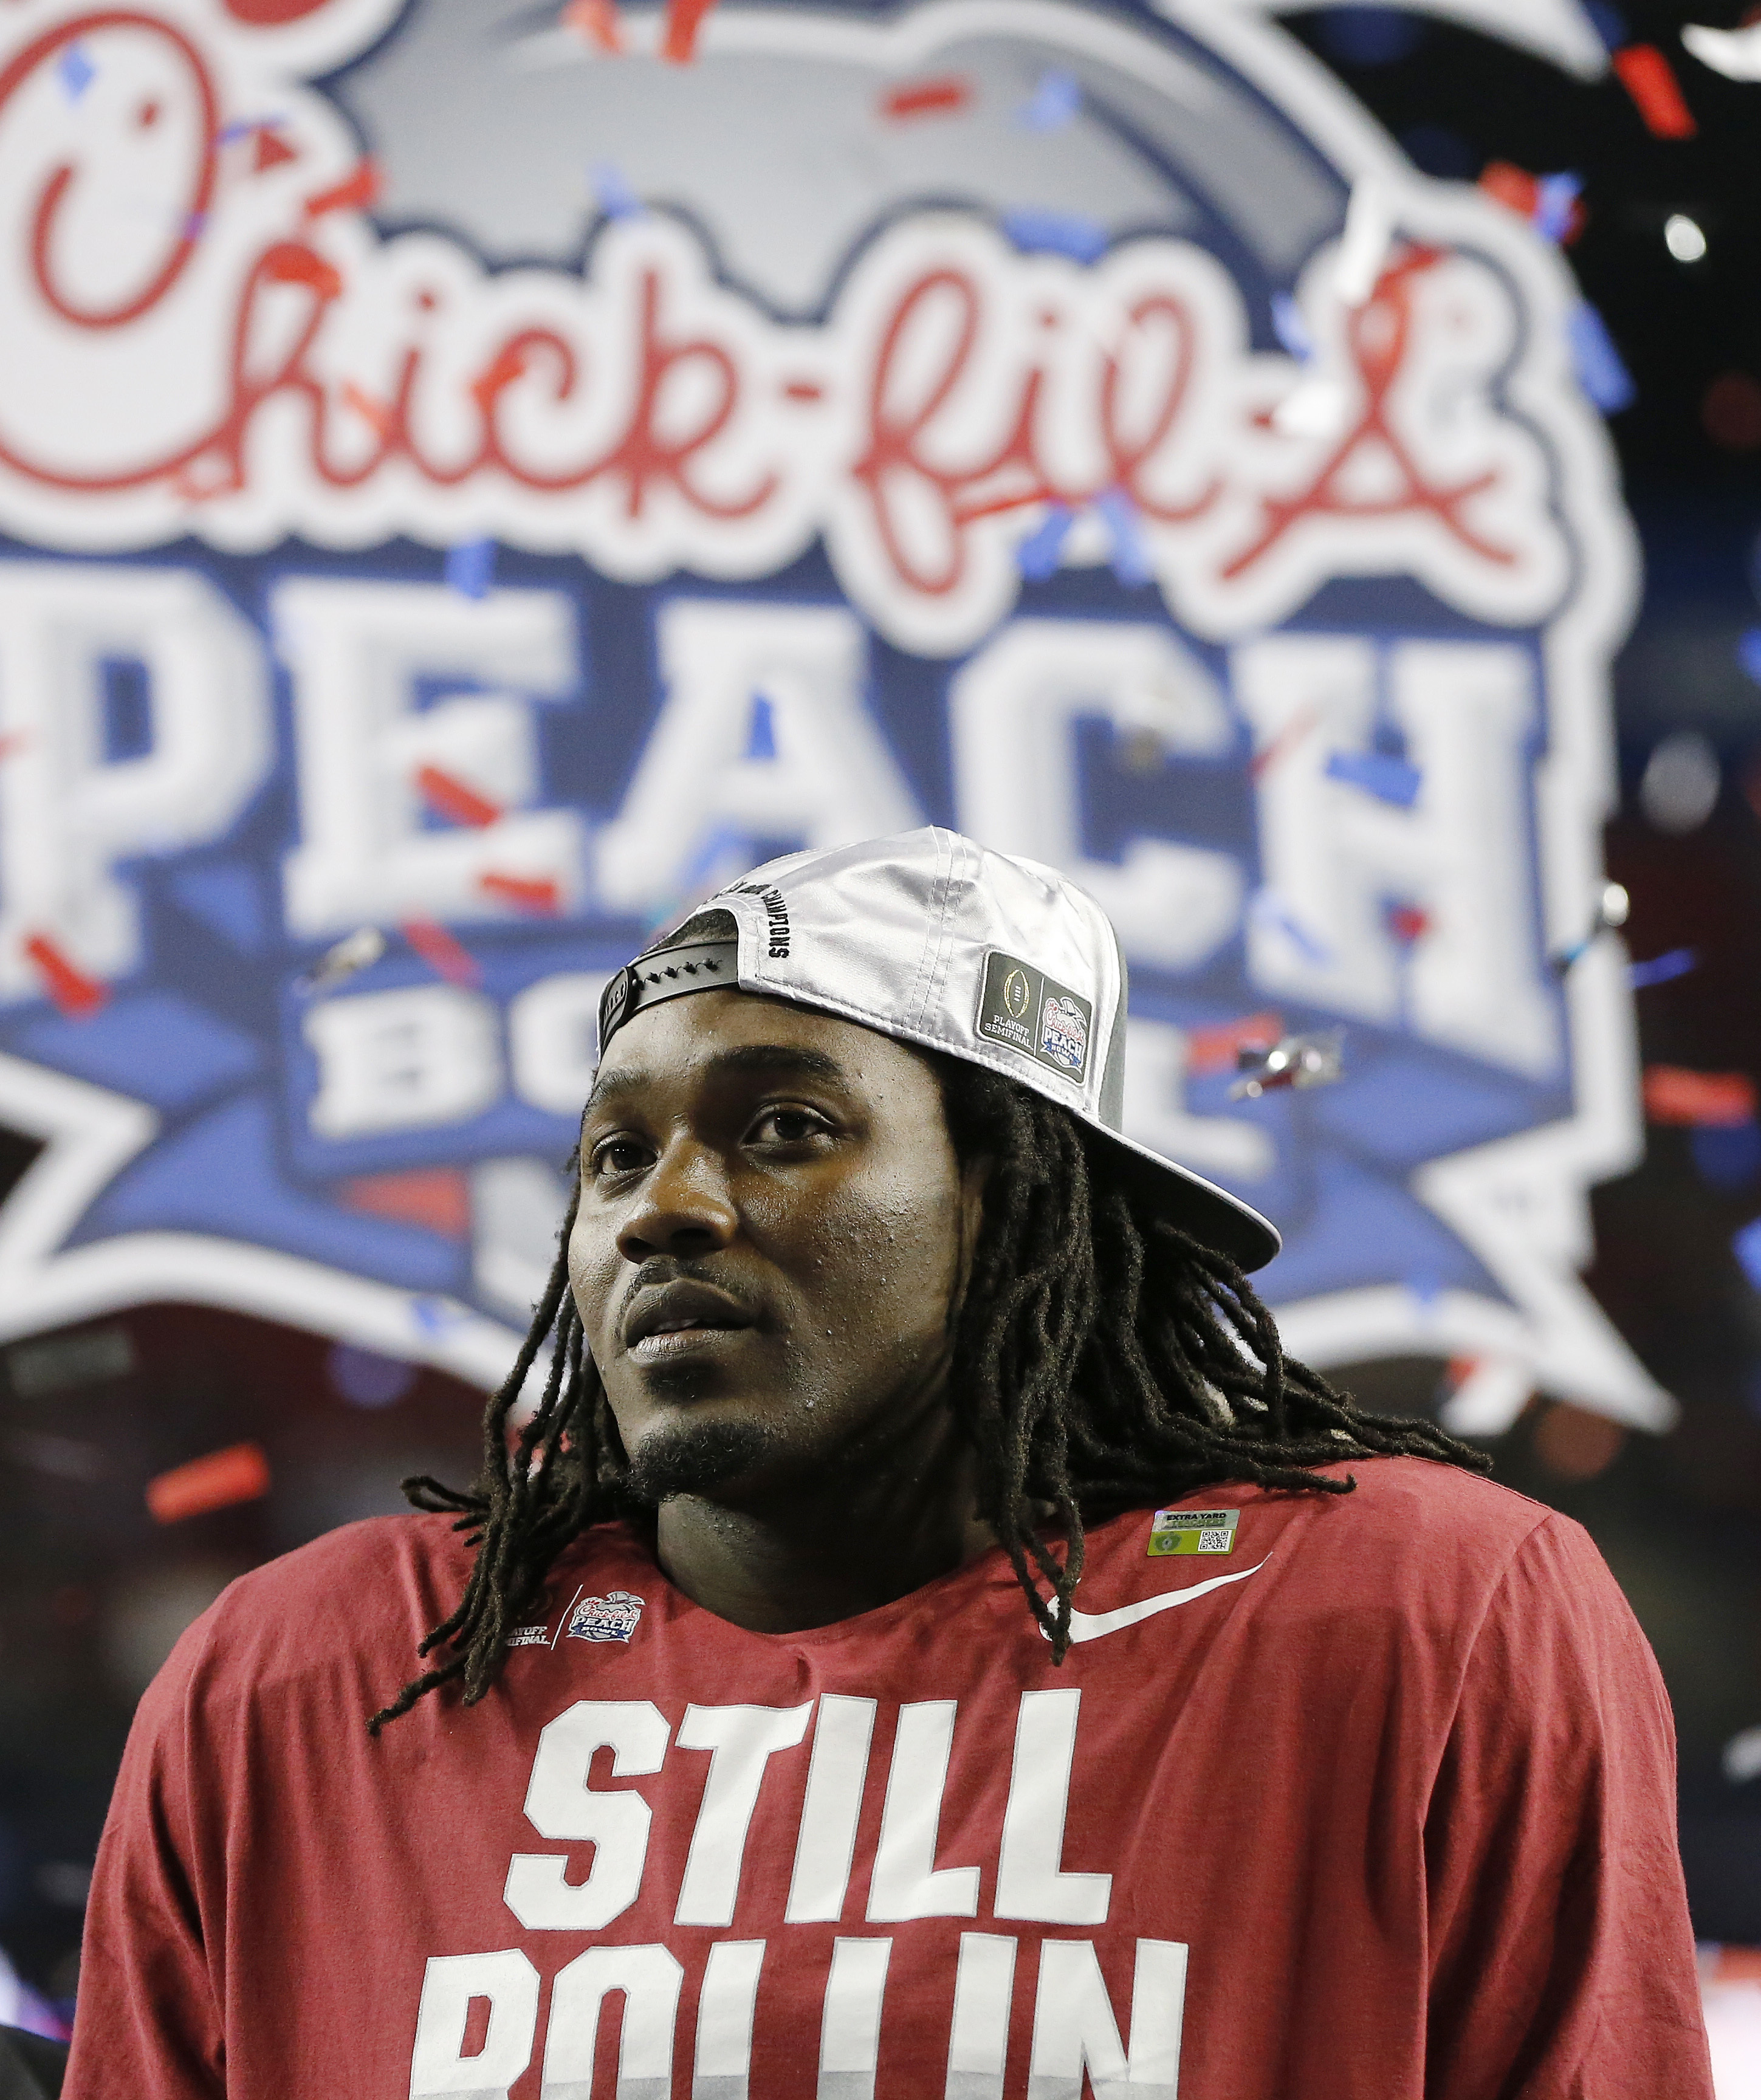 Alabama running back Bo Scarbrough stands on the stage after the Peach Bowl NCAA college football playoff game against Washington, Saturday, Dec. 31, 2016, in Atlanta. Alabama won 24-7. (AP Photo/John Bazemore)